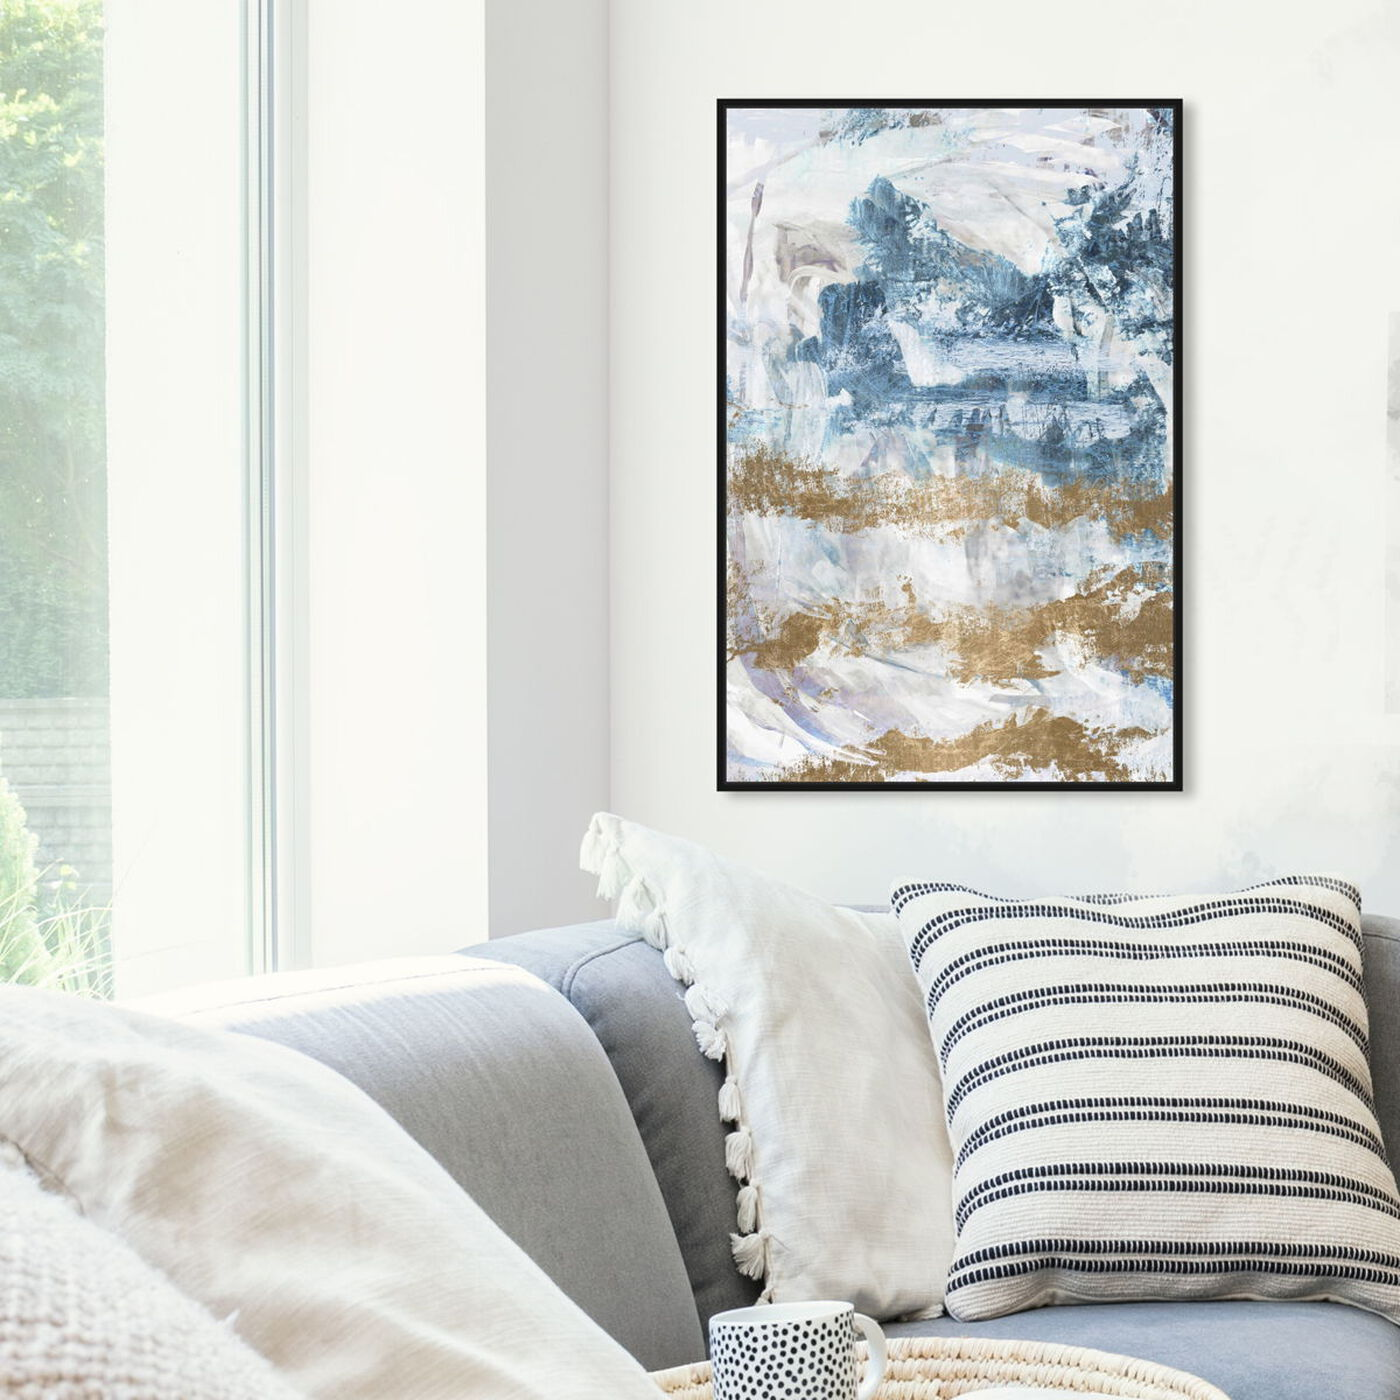 Hanging view of So Much Love featuring abstract and textures art.